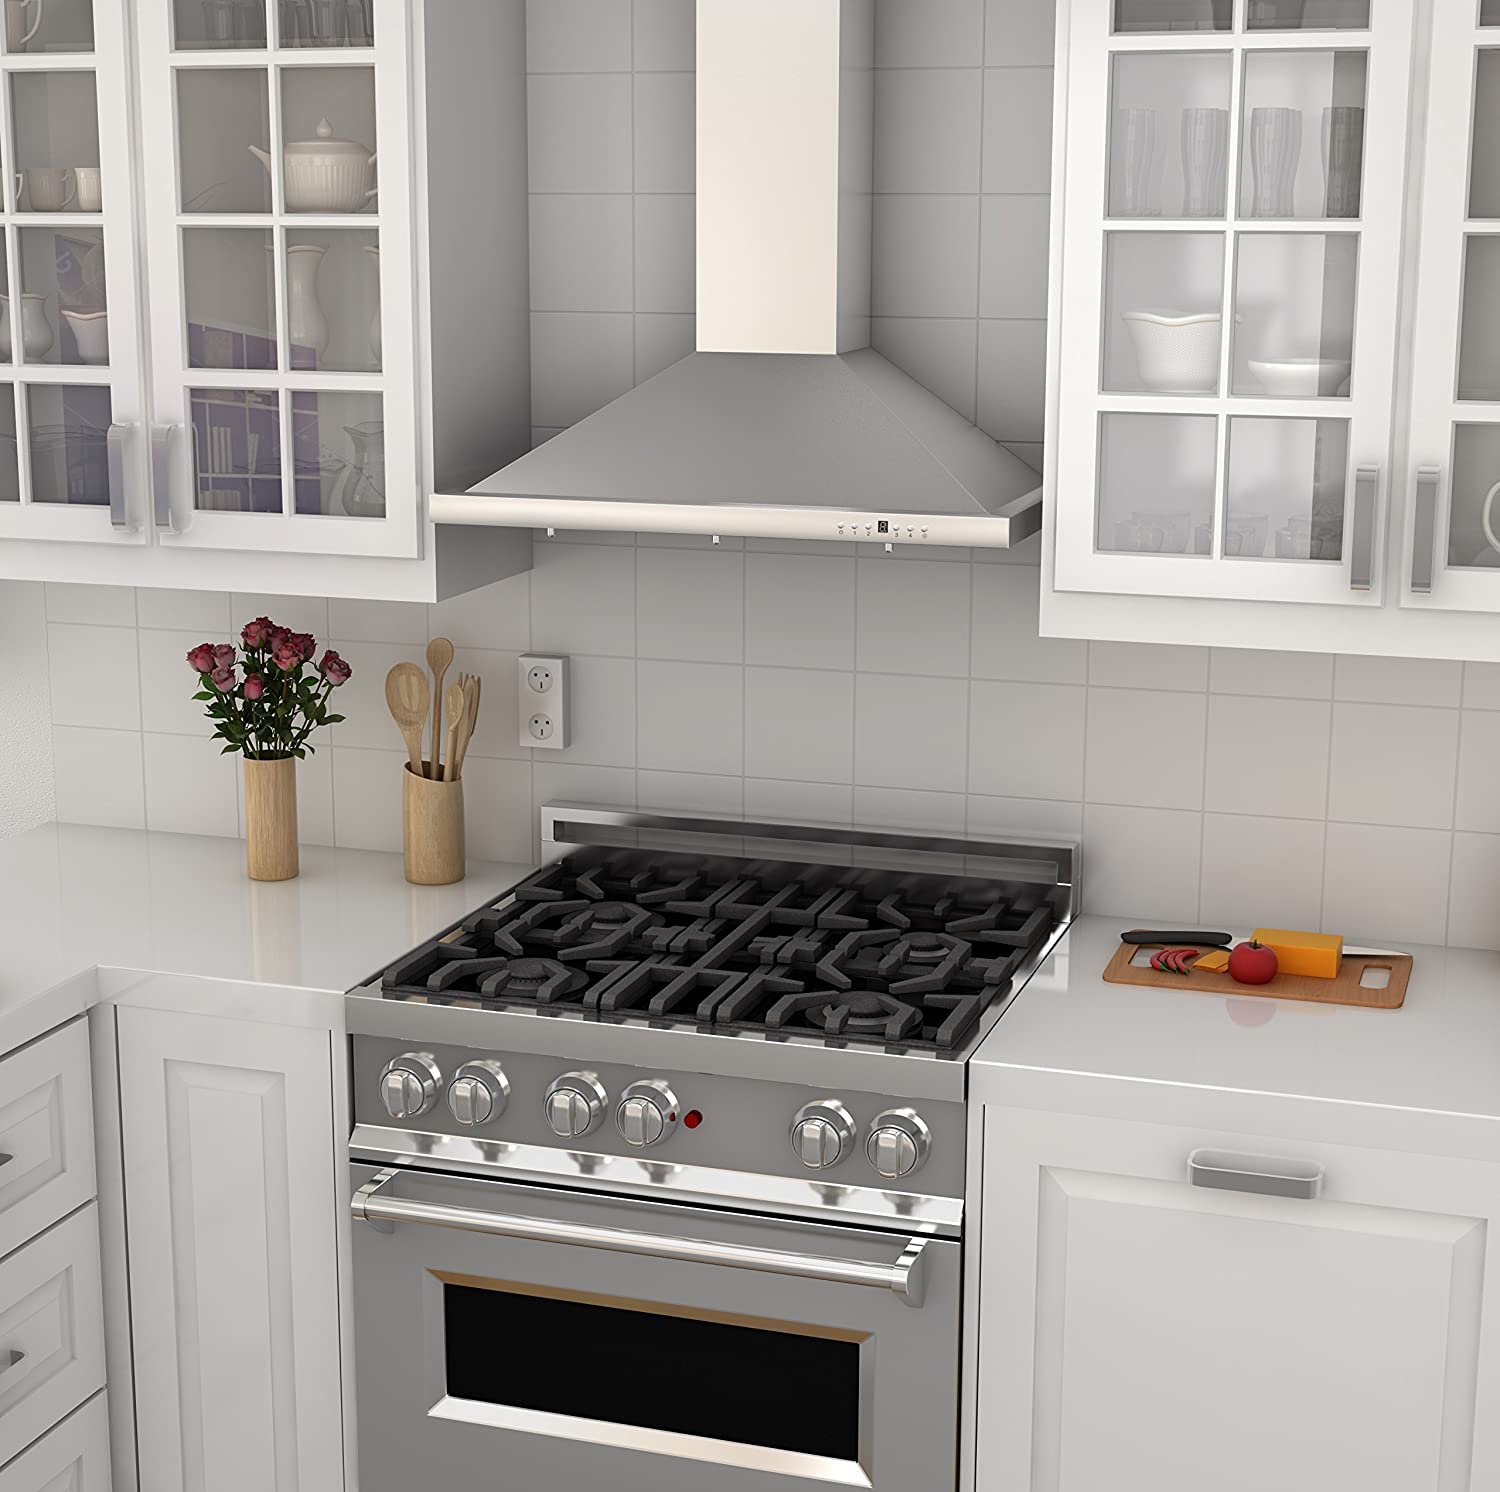 Z Line Kb 36 Stainless Steel Wall Mount Range Hood Wiring Oven And Cooktop Inch Appliances